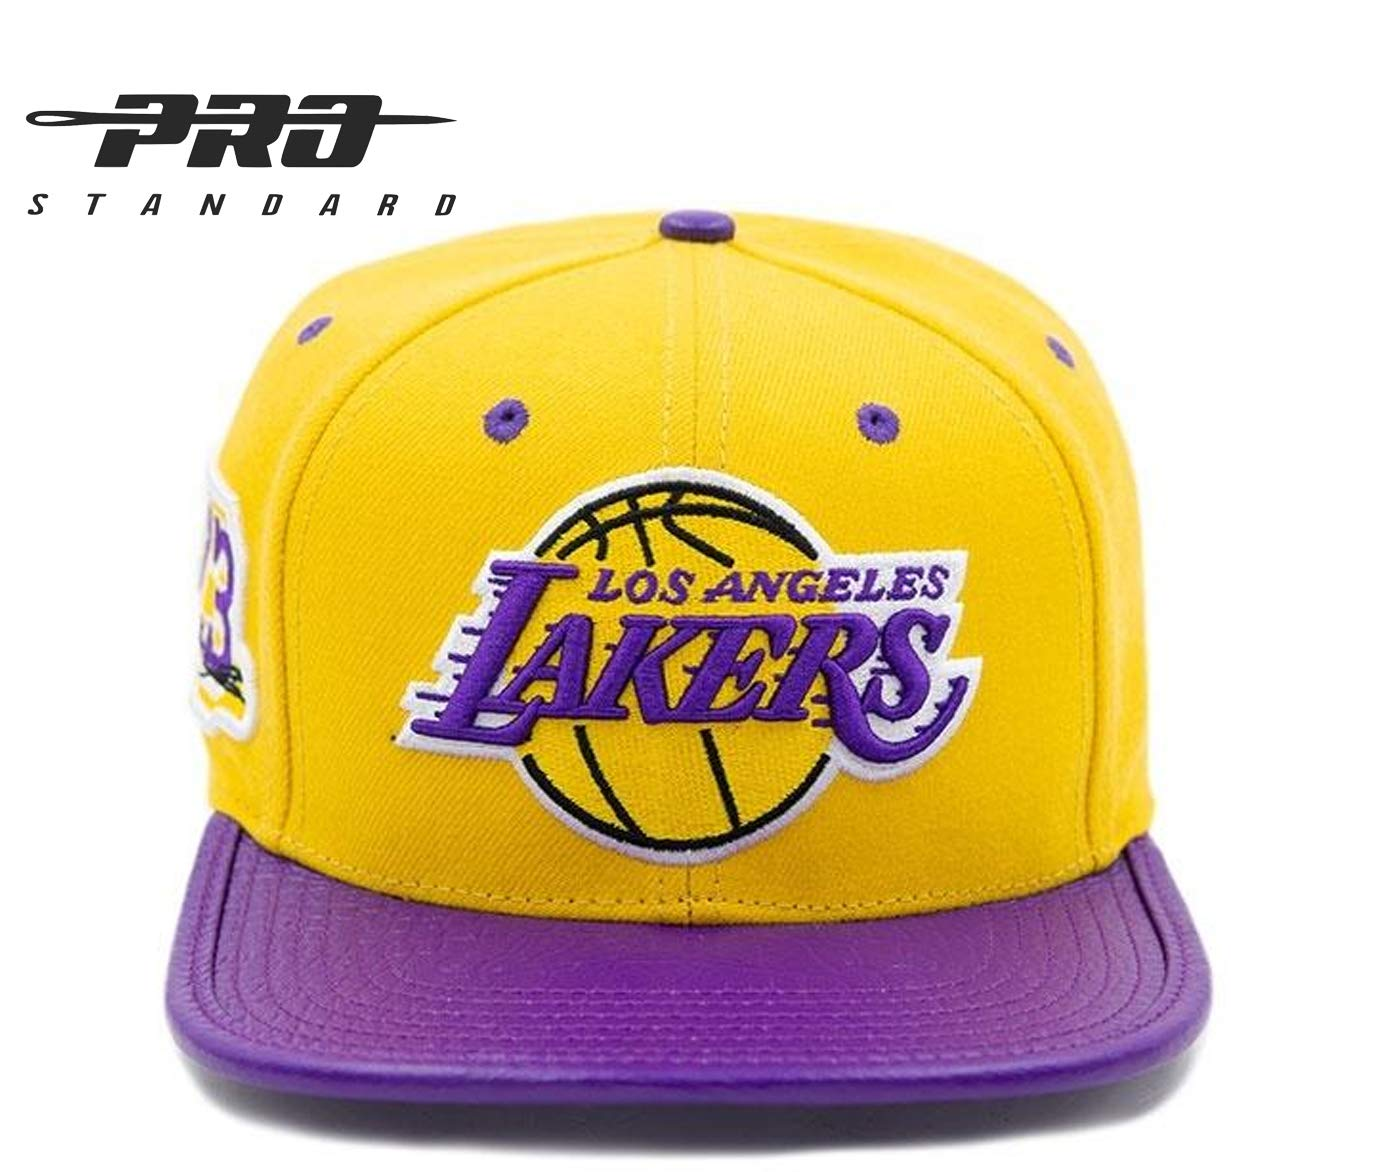 ac99bf7a5a1 Amazon.com   Pro Standard Los Angeles Lakers Lebron James Signature  Officially Licensed Genuine Leather Cap   Sports   Outdoors